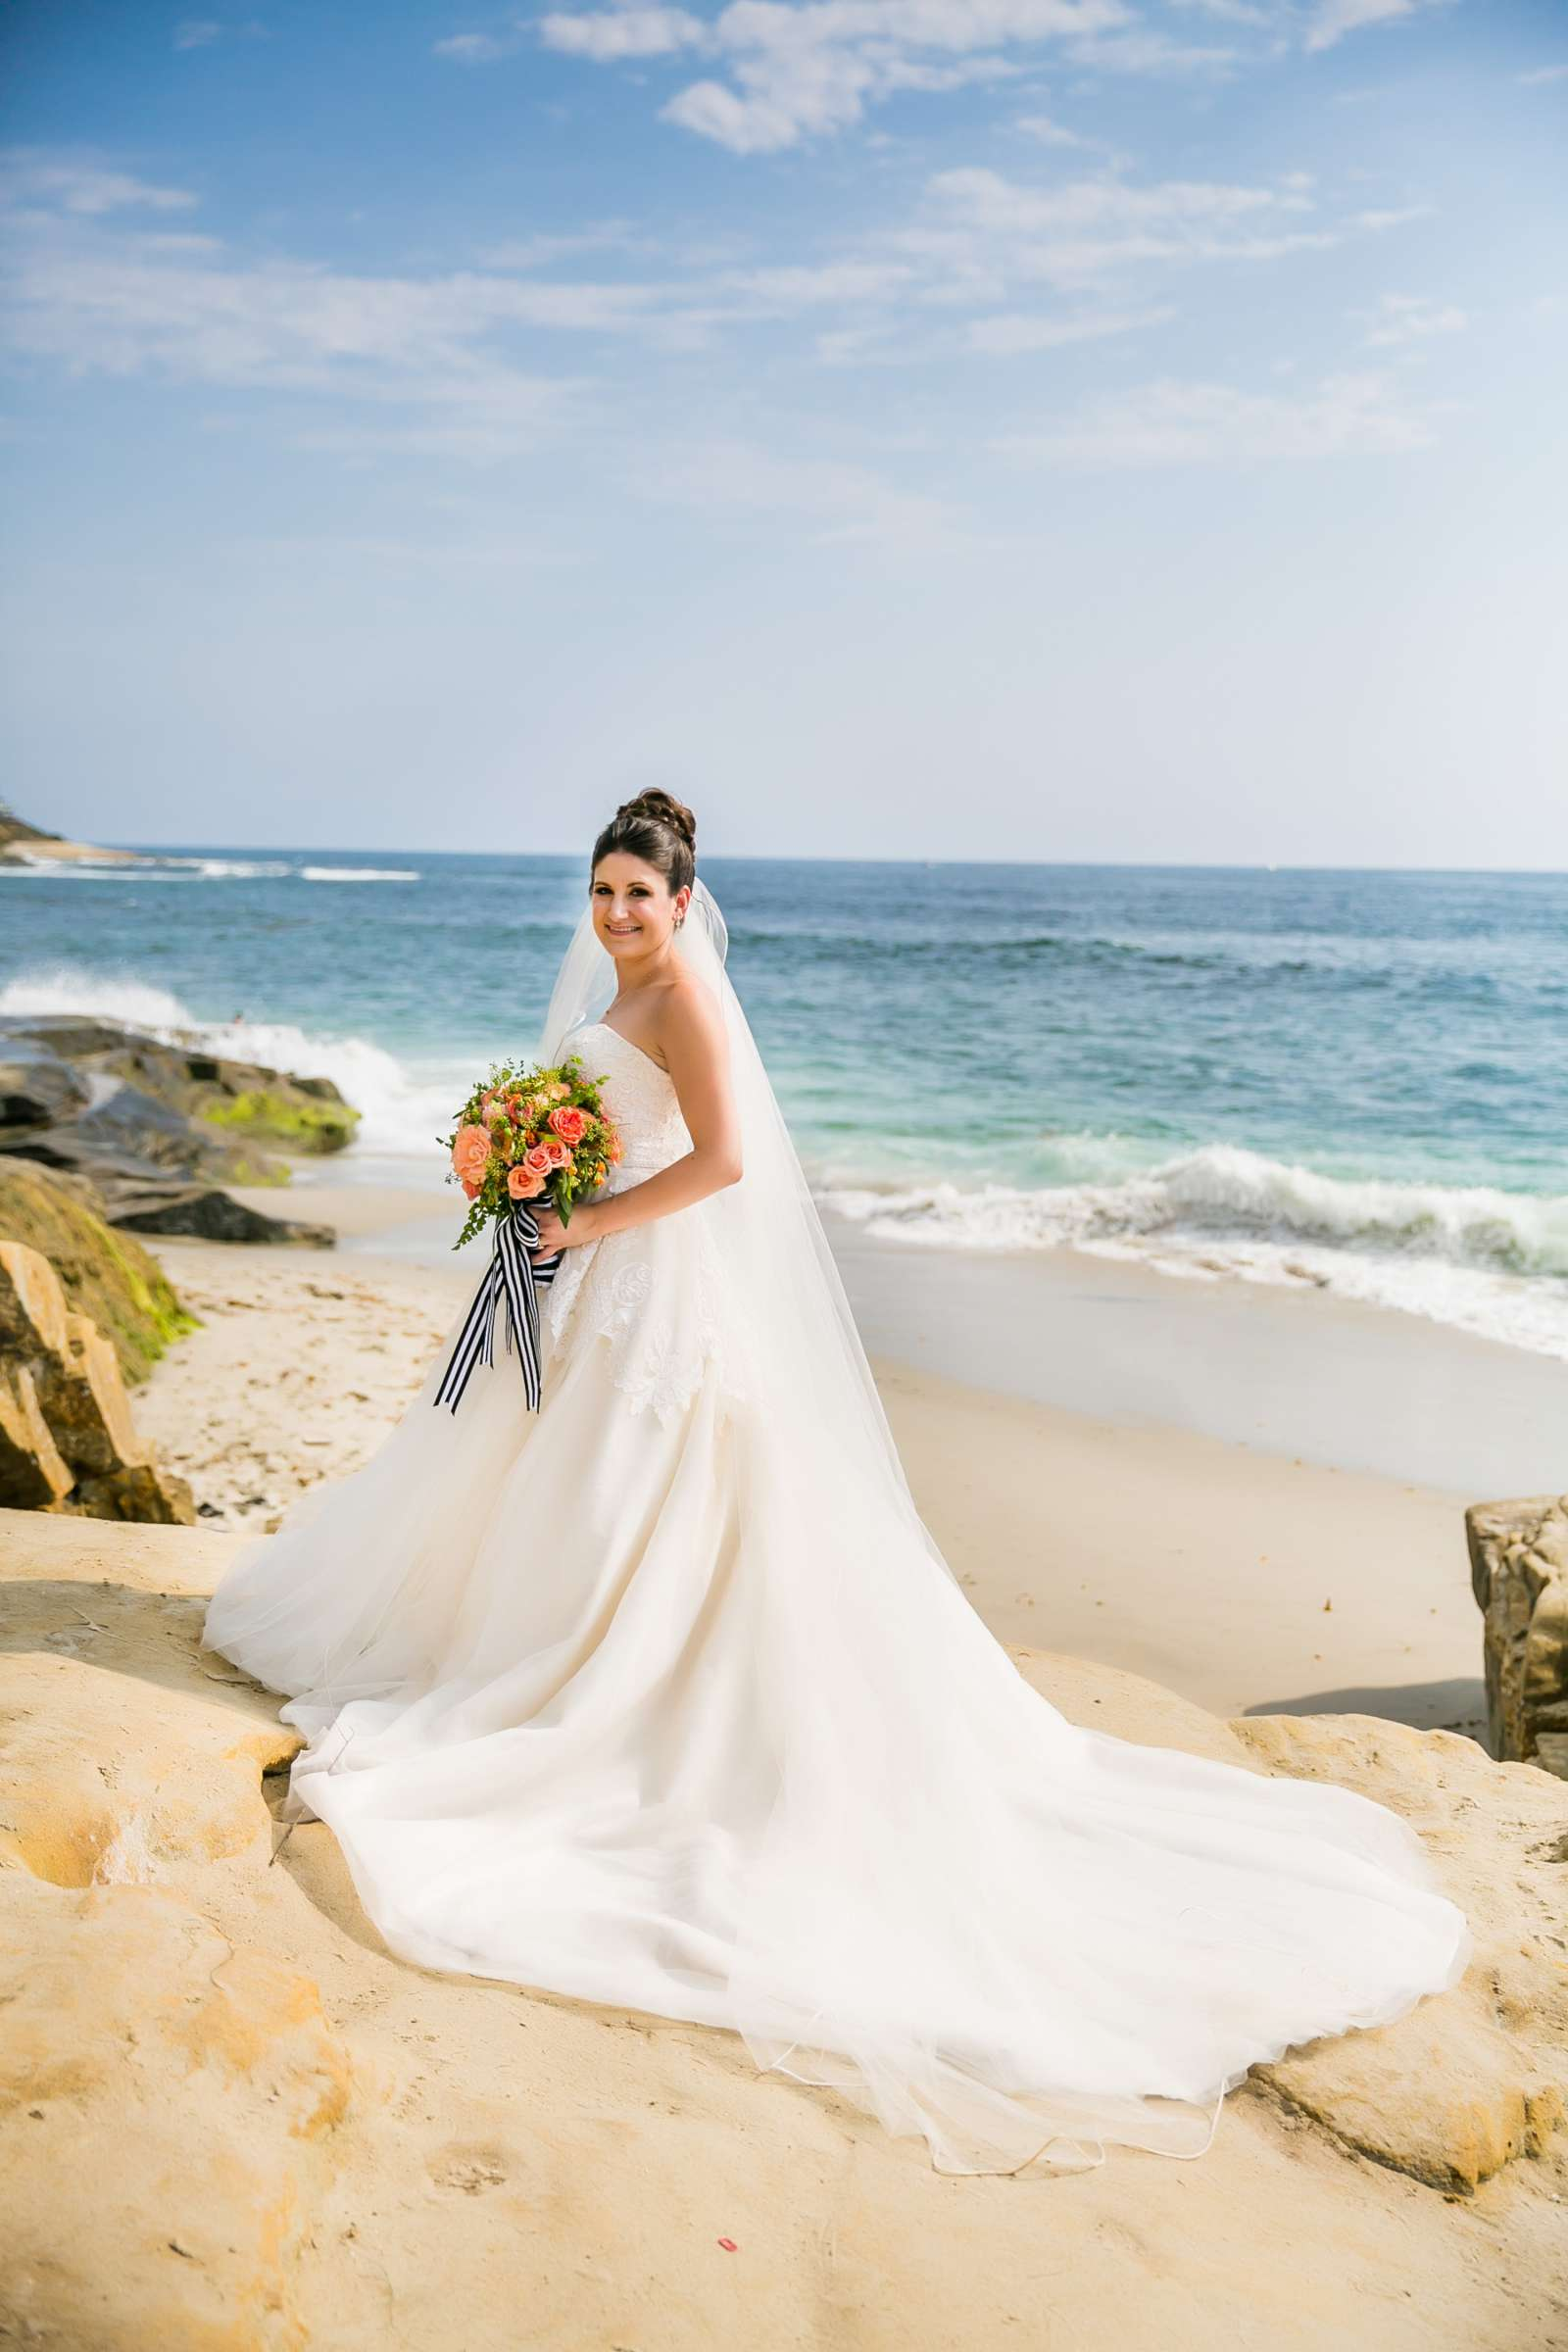 Bahia Hotel Wedding coordinated by I Do Weddings, Meredith and Jack Wedding Photo #17 by True Photography